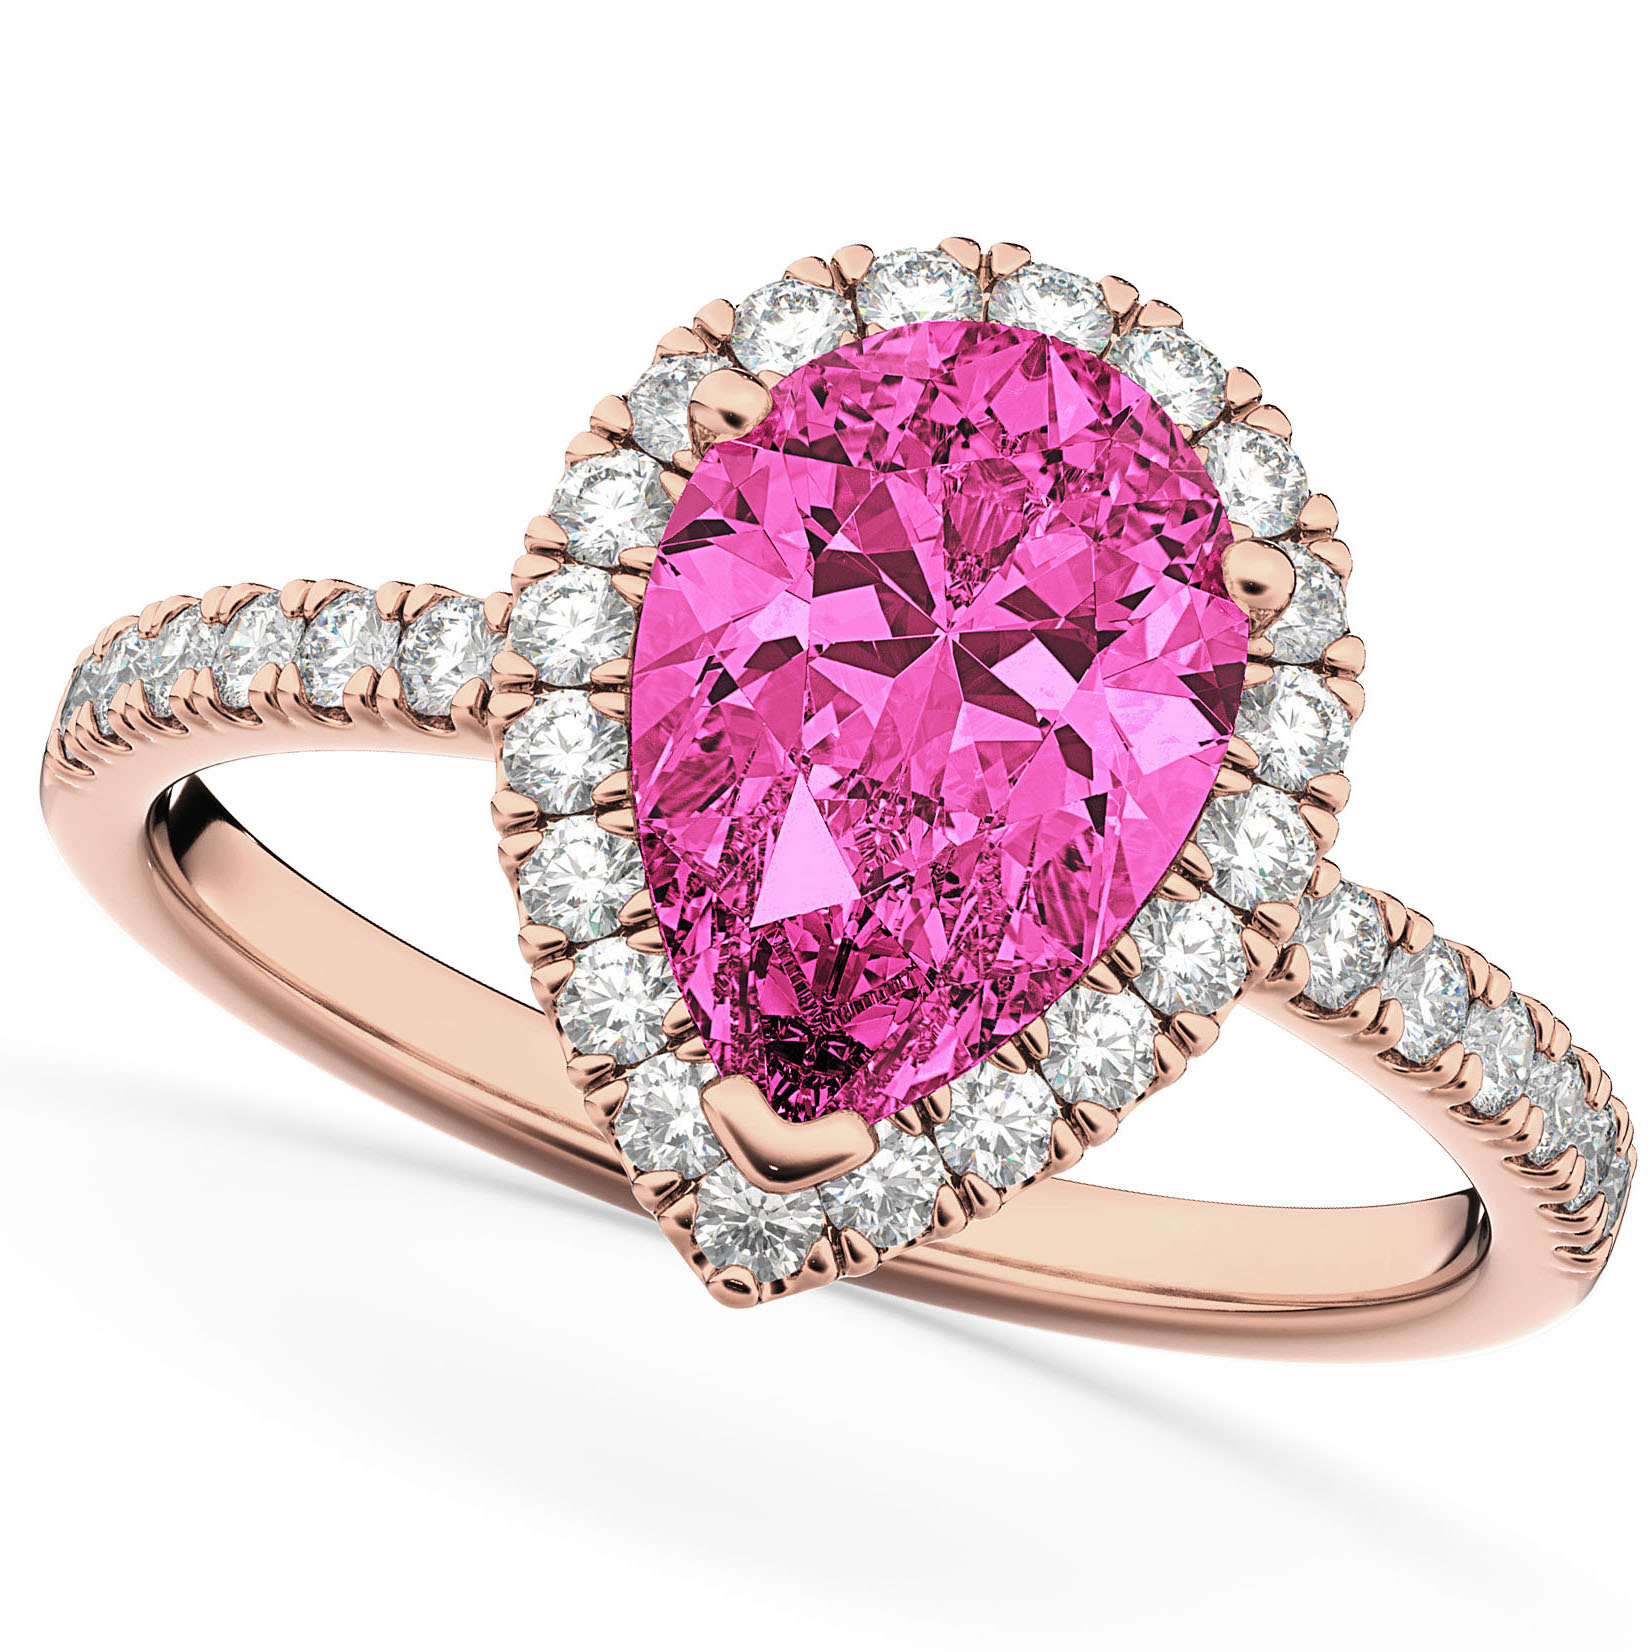 Pear Cut Halo Pink Tourmaline & Diamond Engagement Ring 14K Rose ...